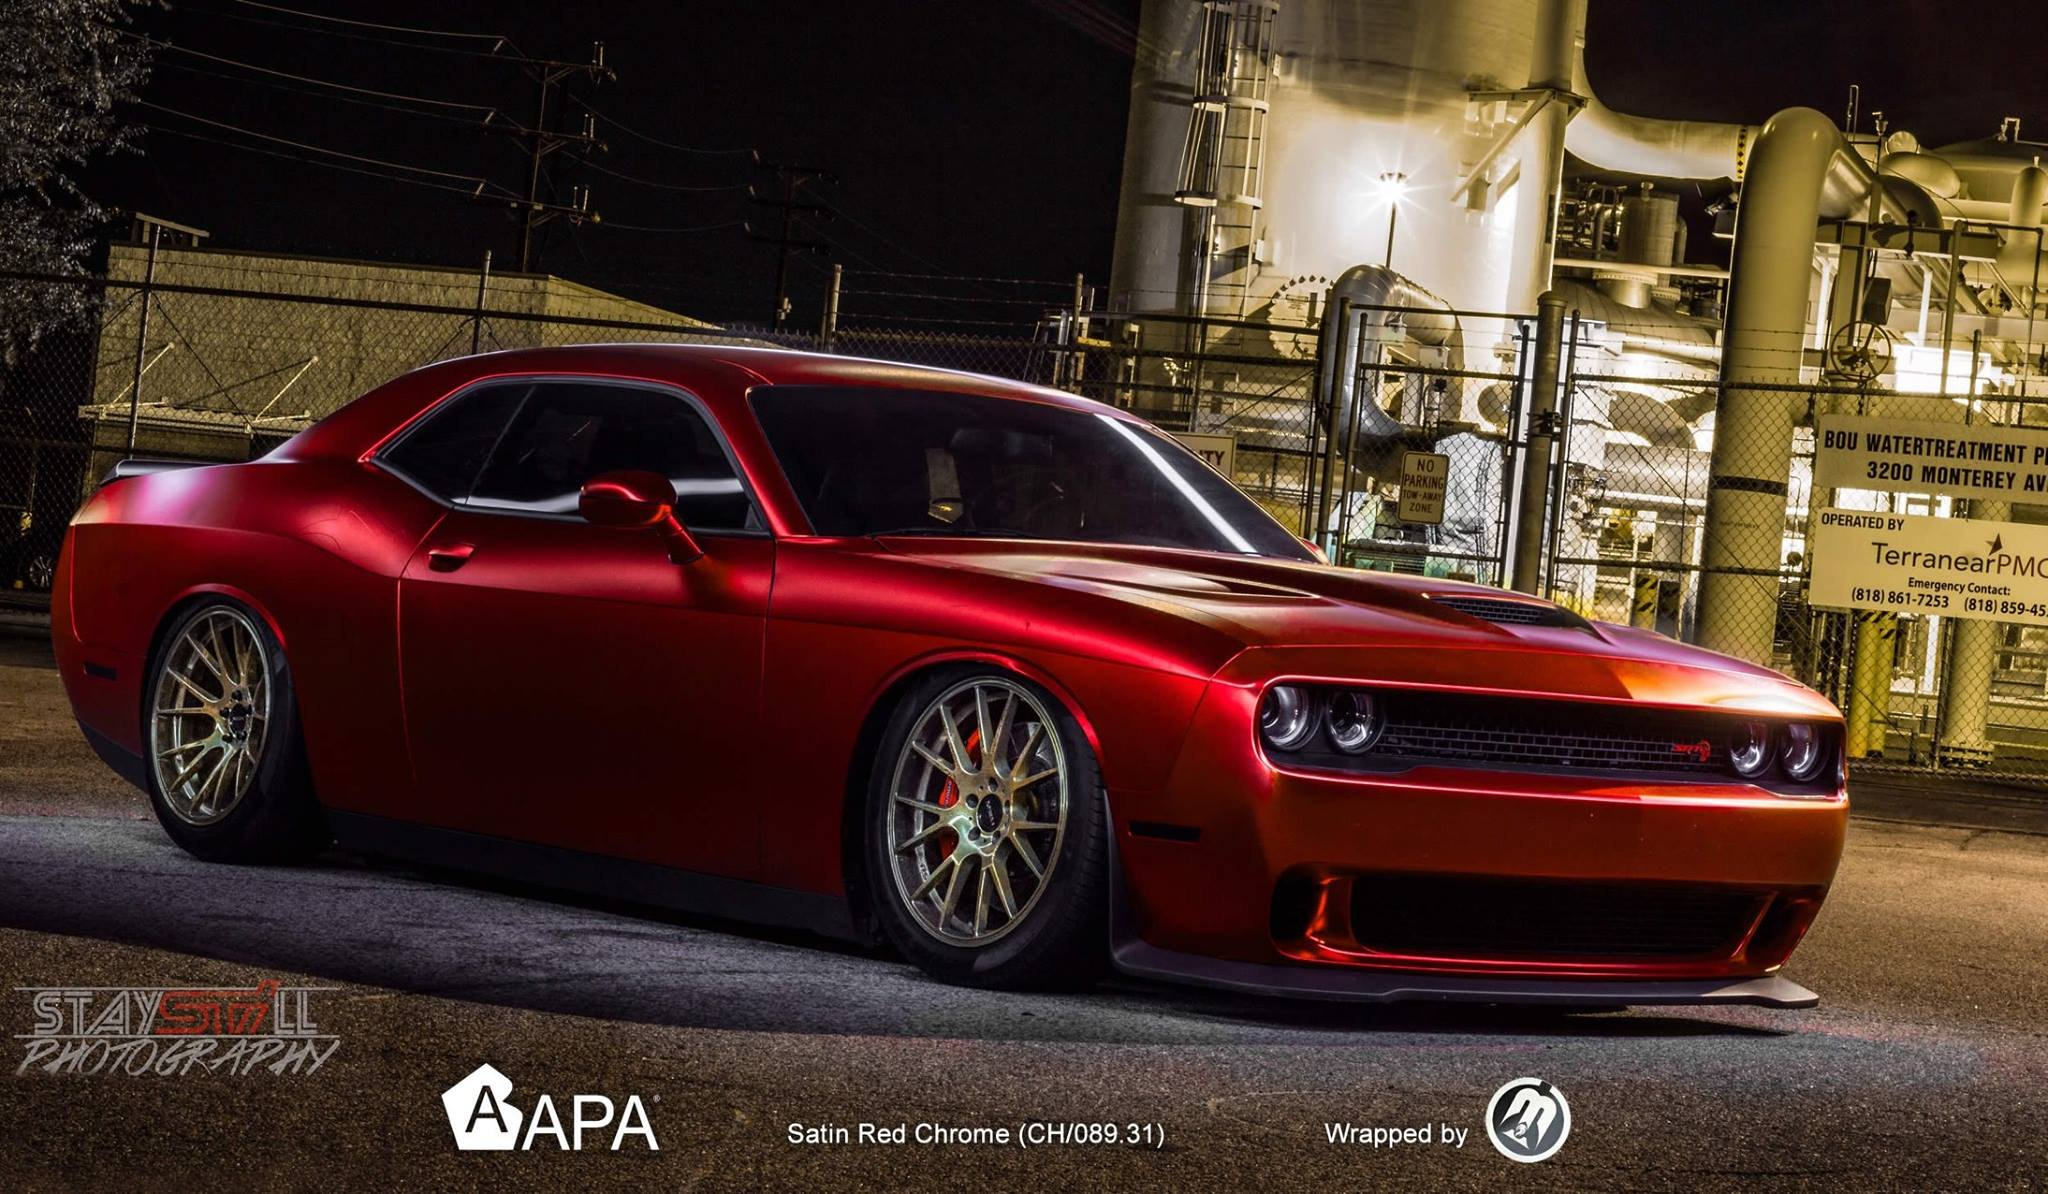 Satin Red Chrome Wrap On A Bagged Dodge Hellcat Carid Com Gallery